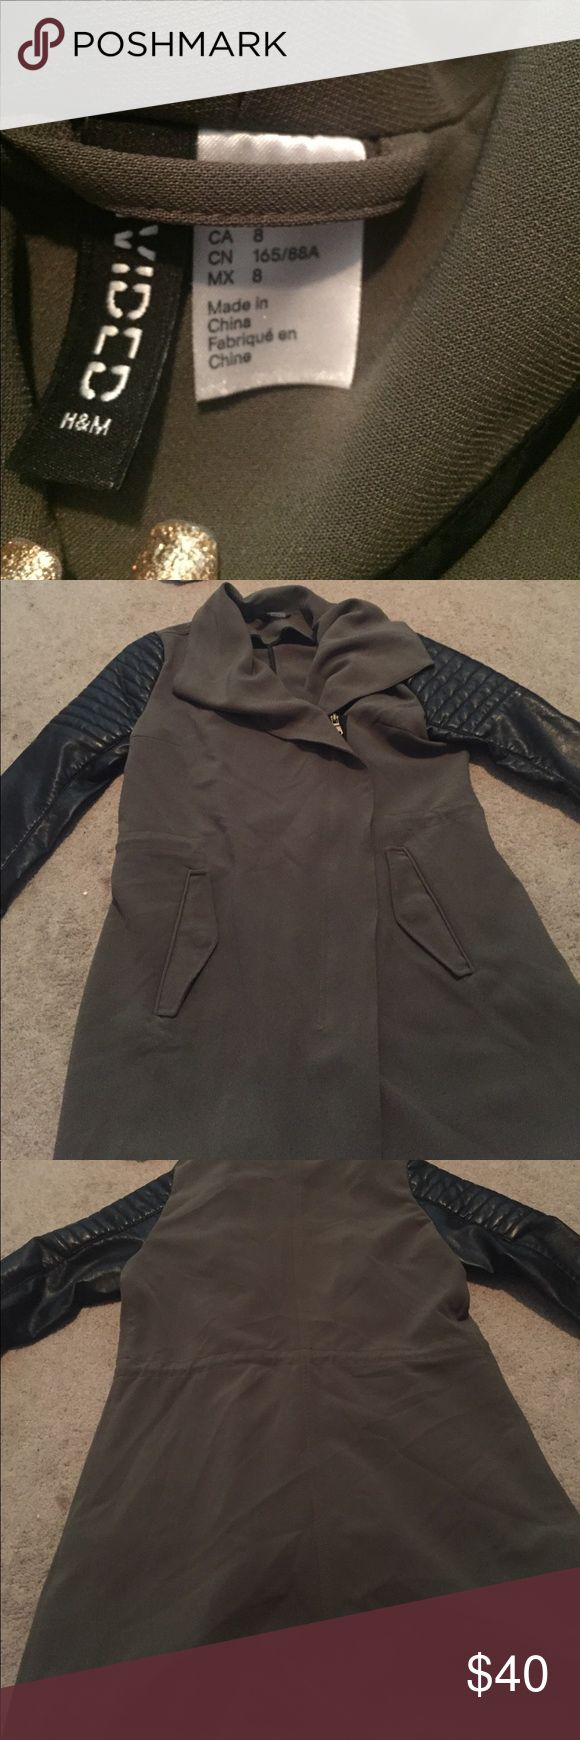 Dressy jacket from H&M Green &Black jacket H&M Jackets & Coats